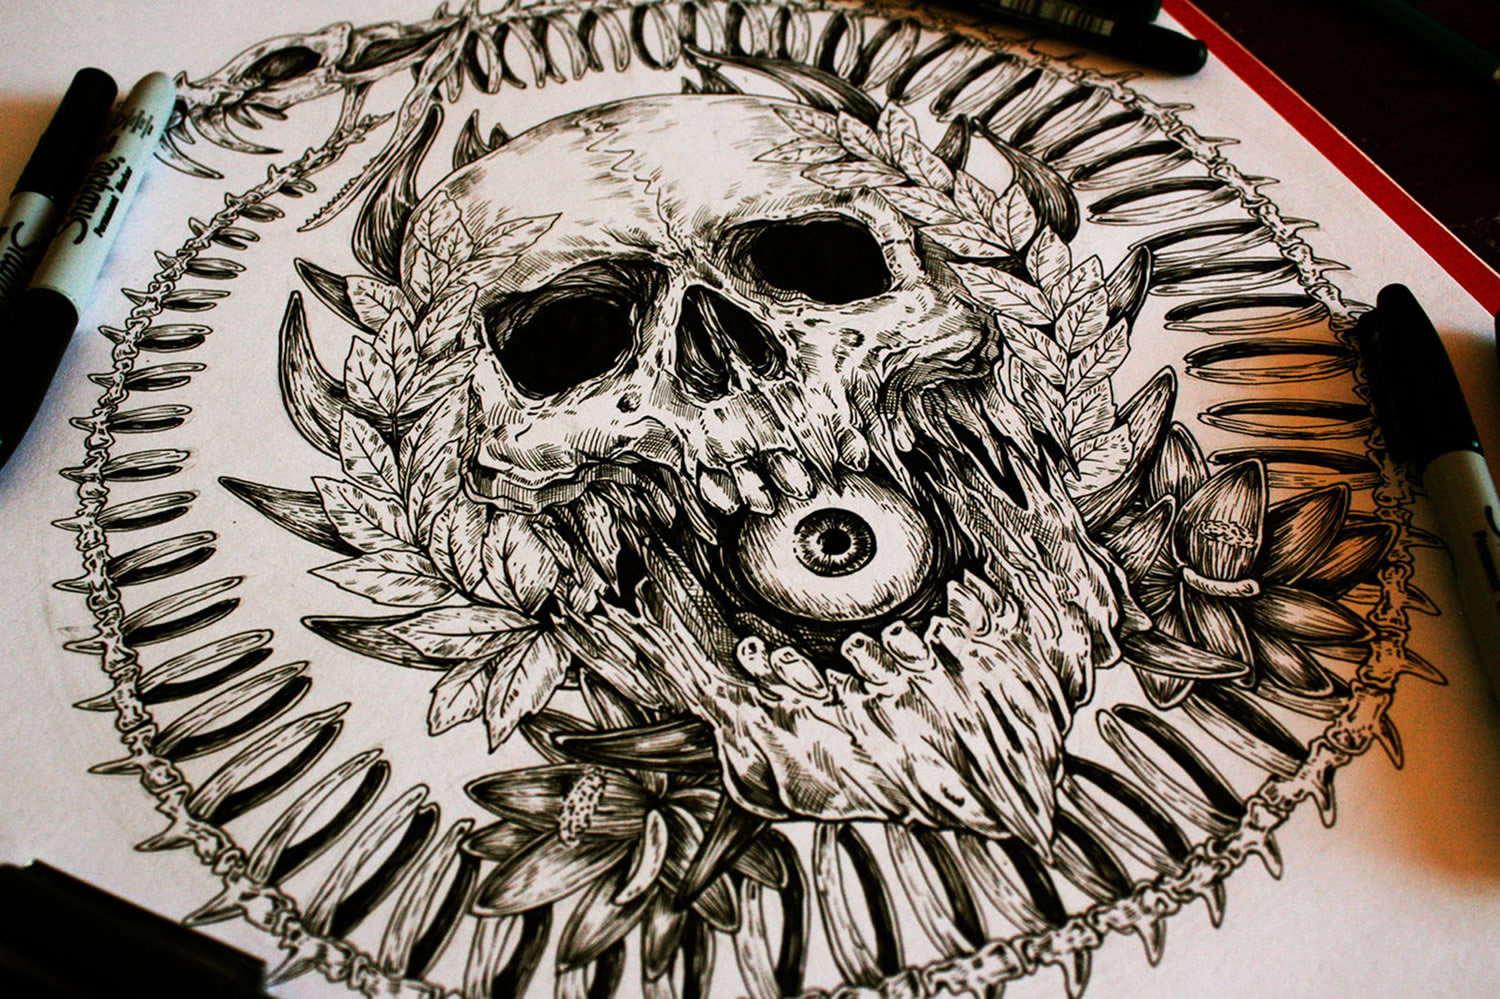 ouroboros, skull and eye by e.g. the freak